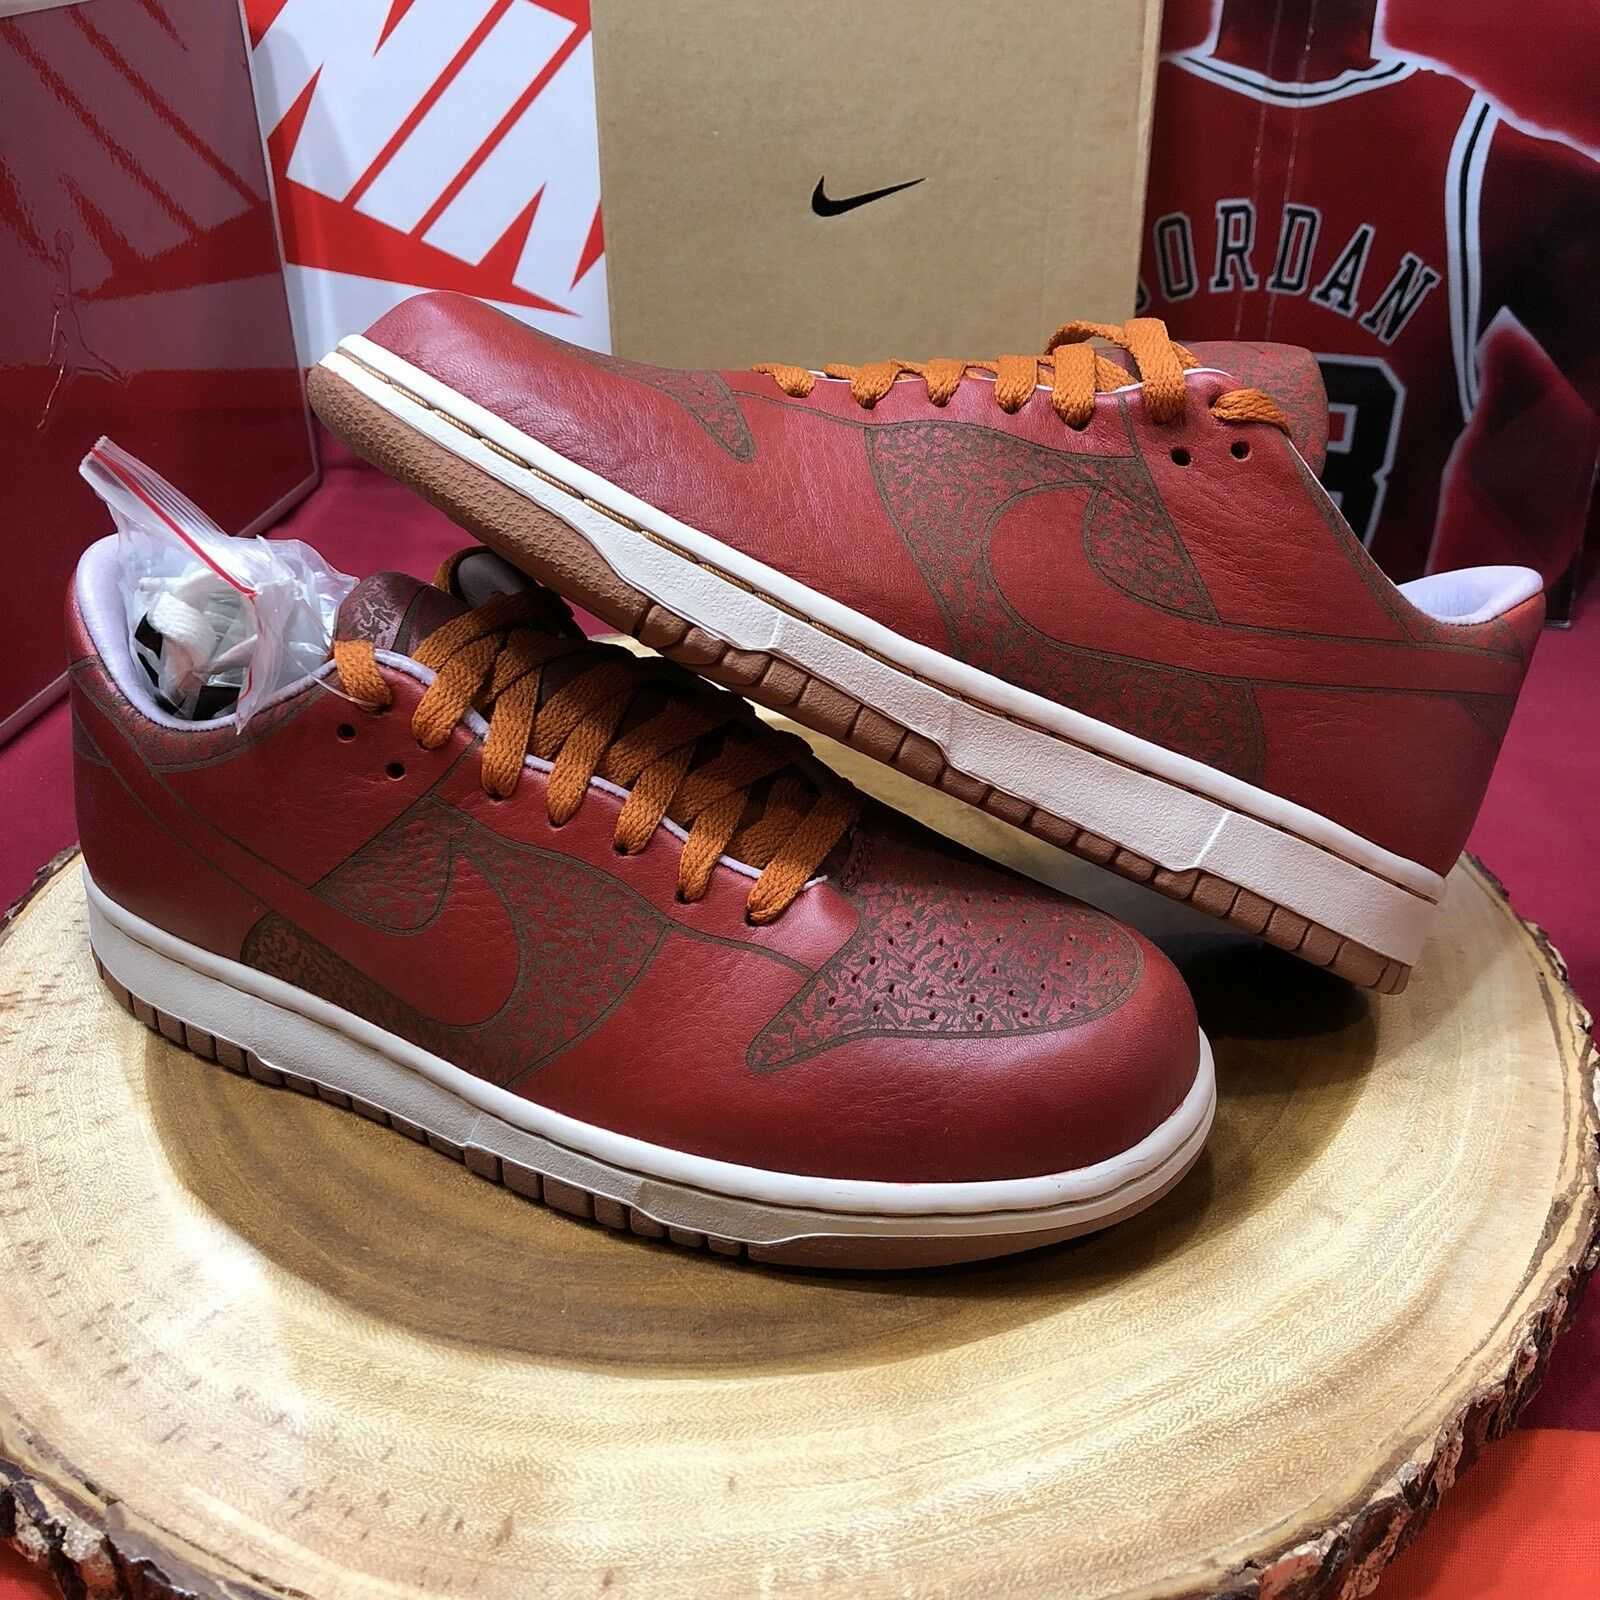 2018 NIKE DUNK LOW 1 PIECE LASER ONE IK RED TITAN Desert Sole Collector Comfortable Cheap and beautiful fashion